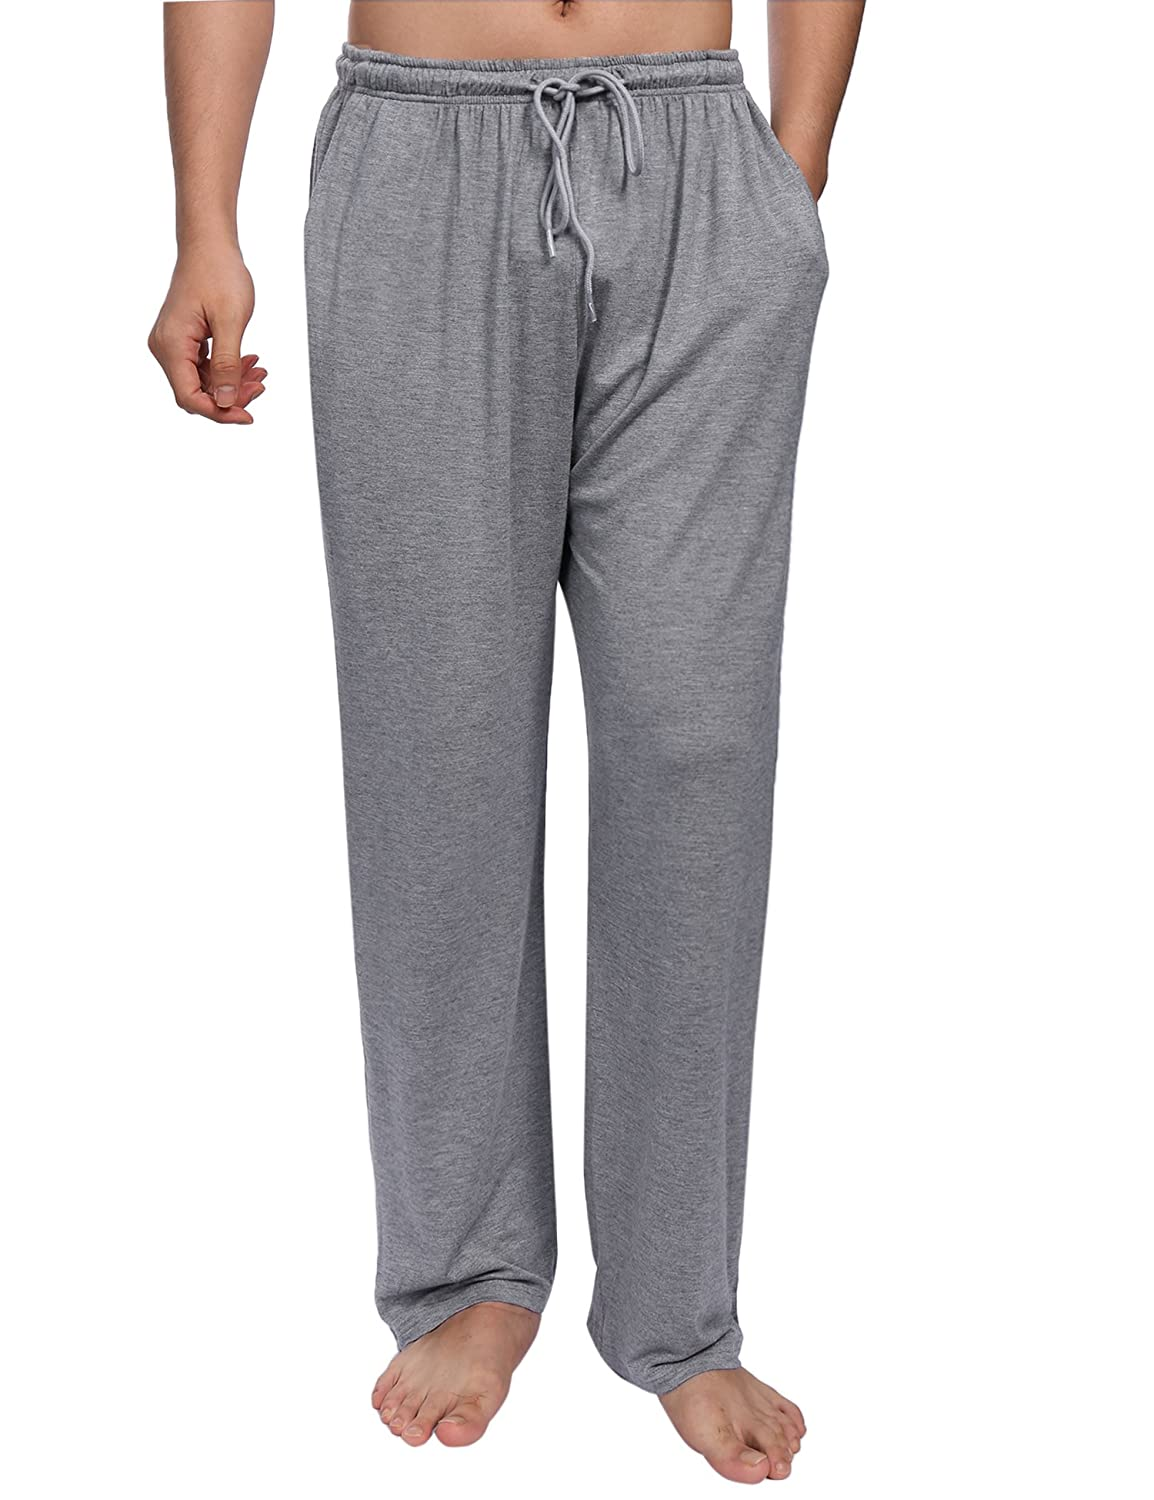 Aibrou Mens Pyjama Bottoms, Casual Plain Modal Soft Long Lounge Pants Trousers Nightwear